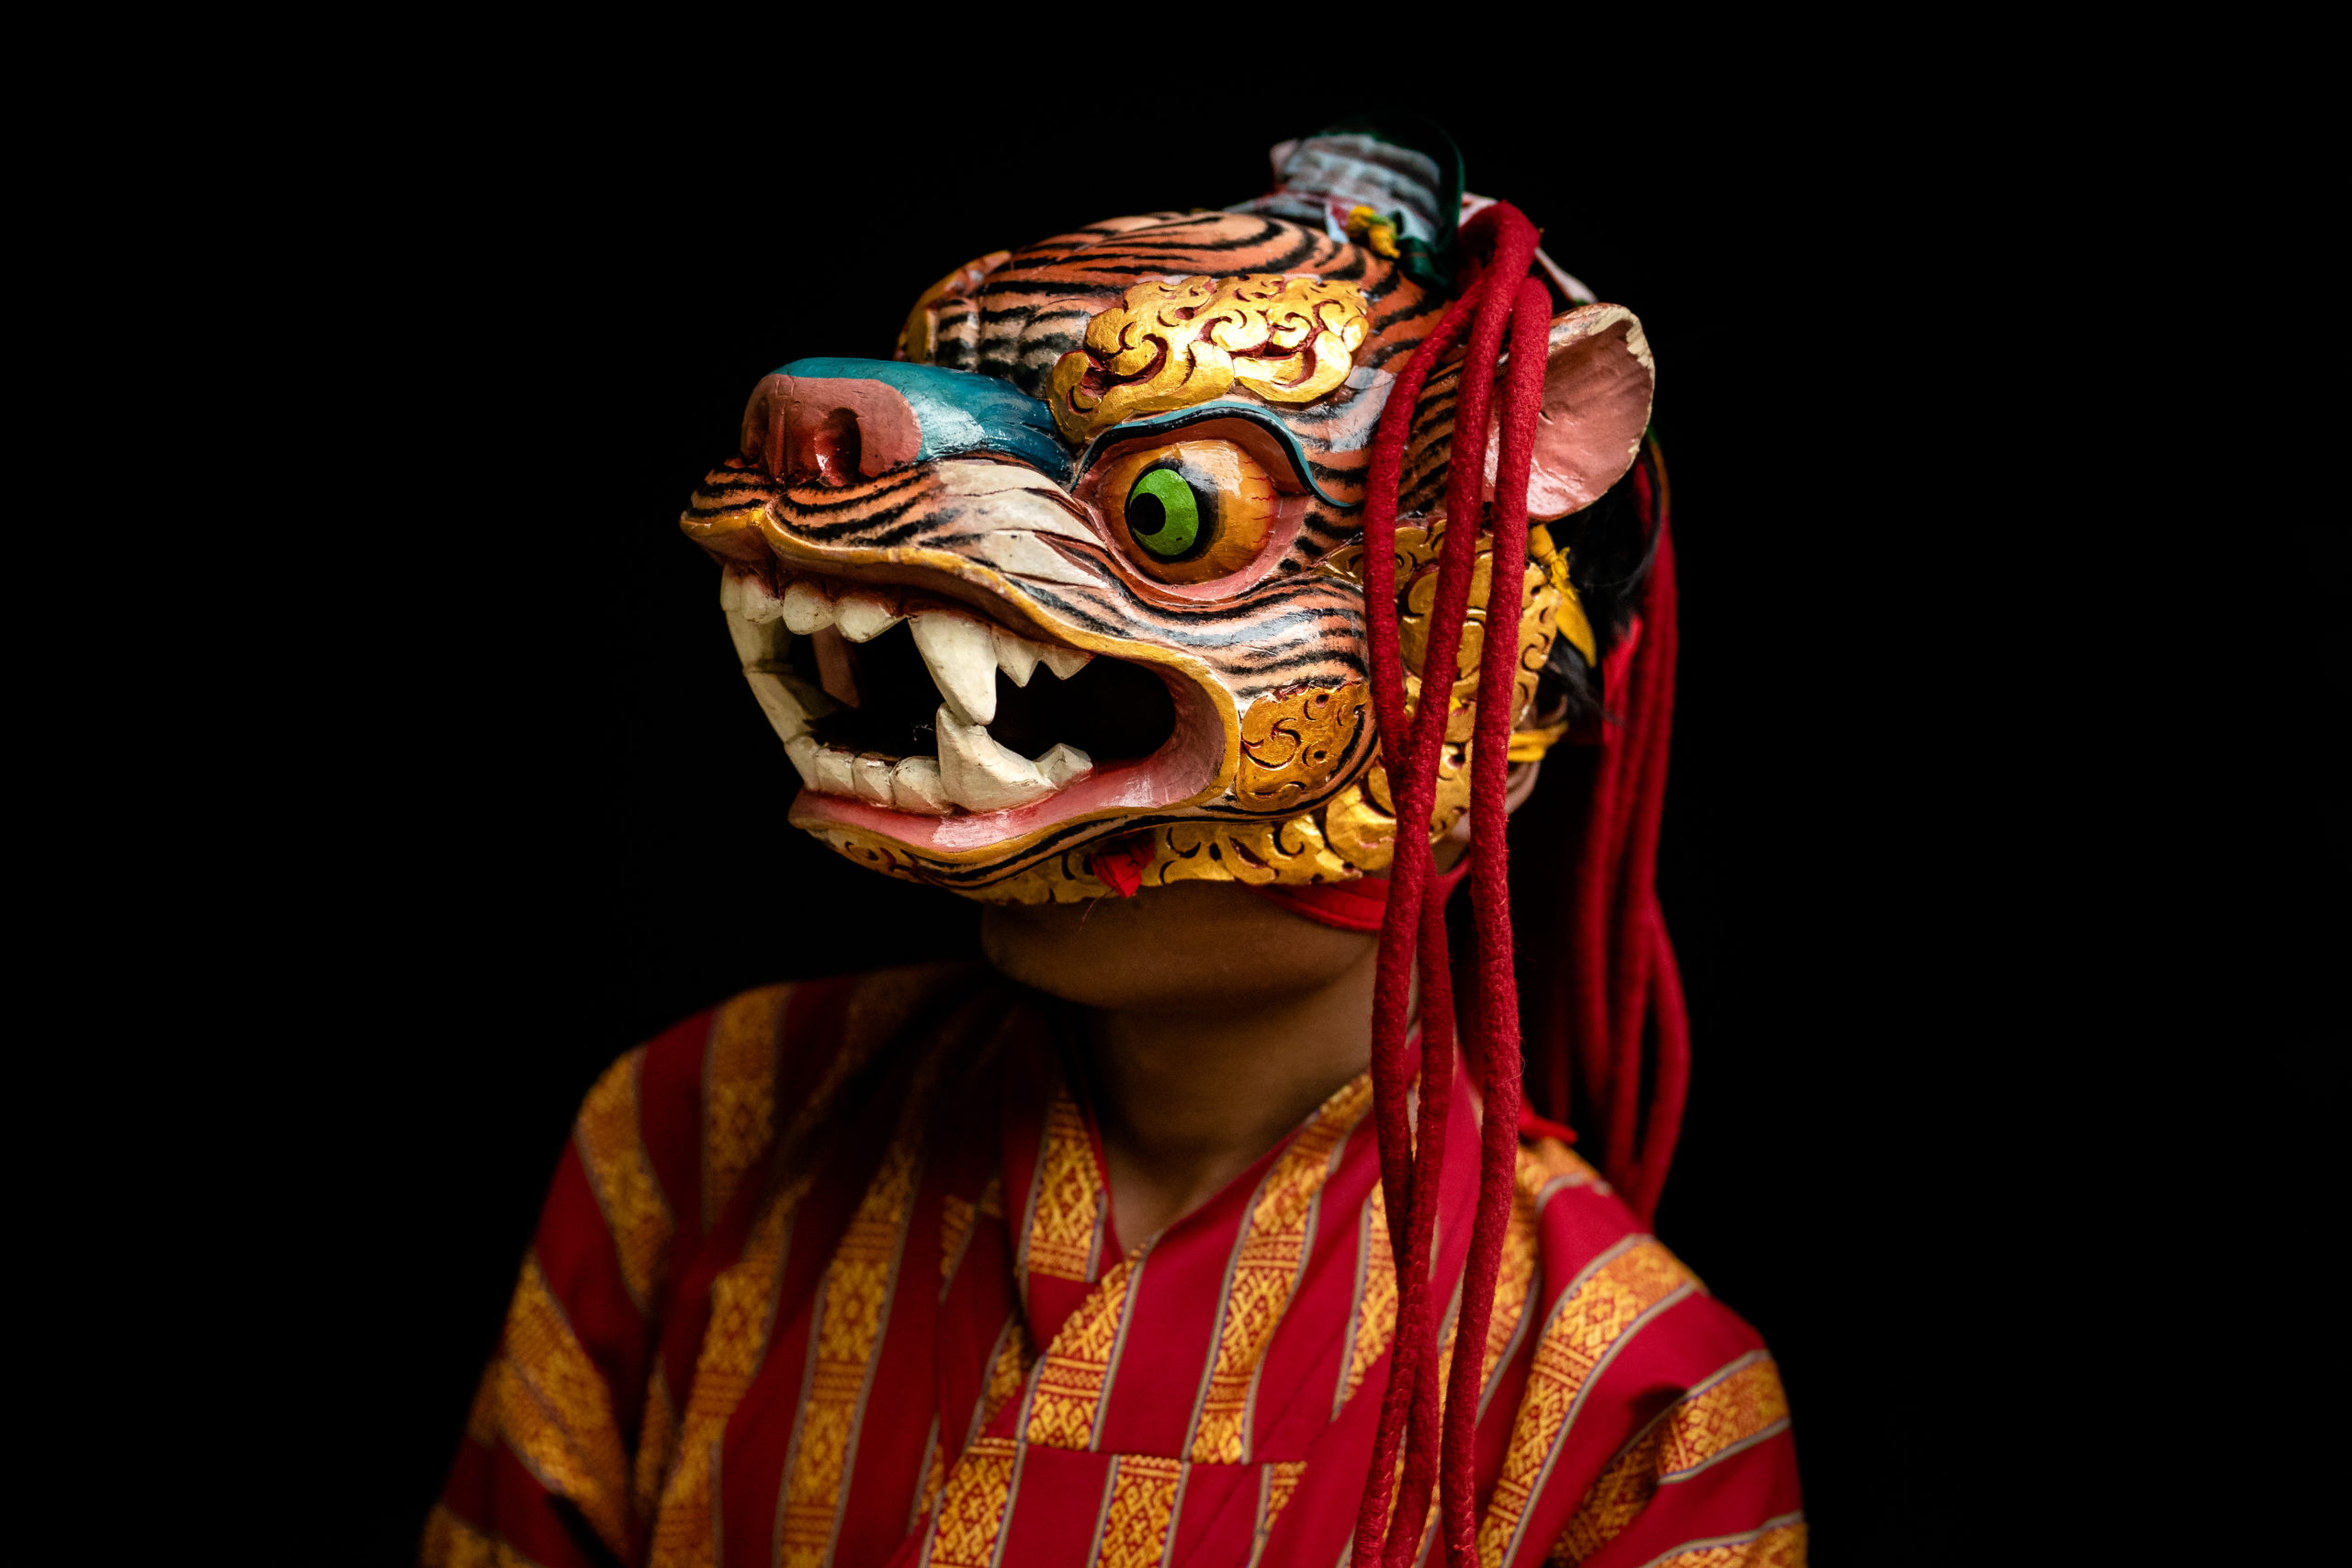 Traditional Bhutanese masked dancer Portrait